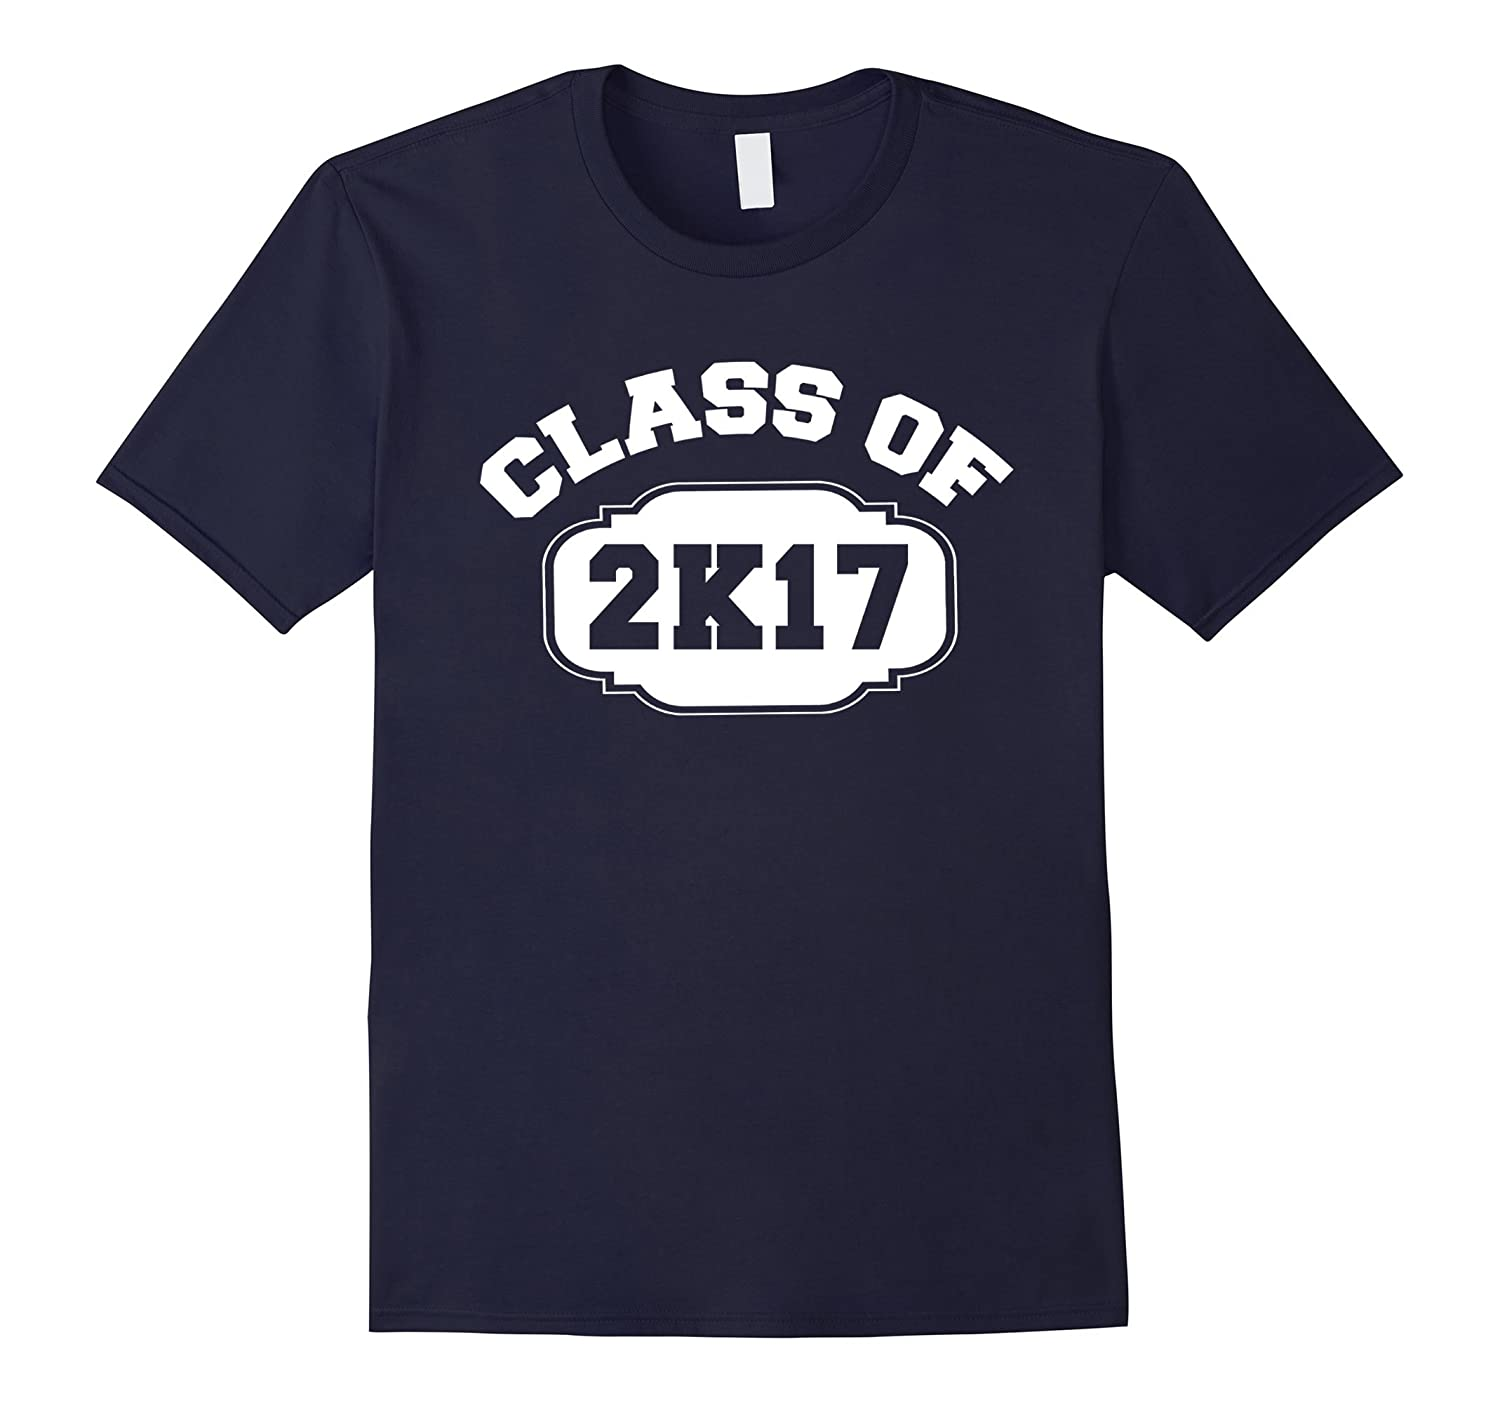 2K17 Class of 2K17 2017 T-shirt by Scarebaby-TH